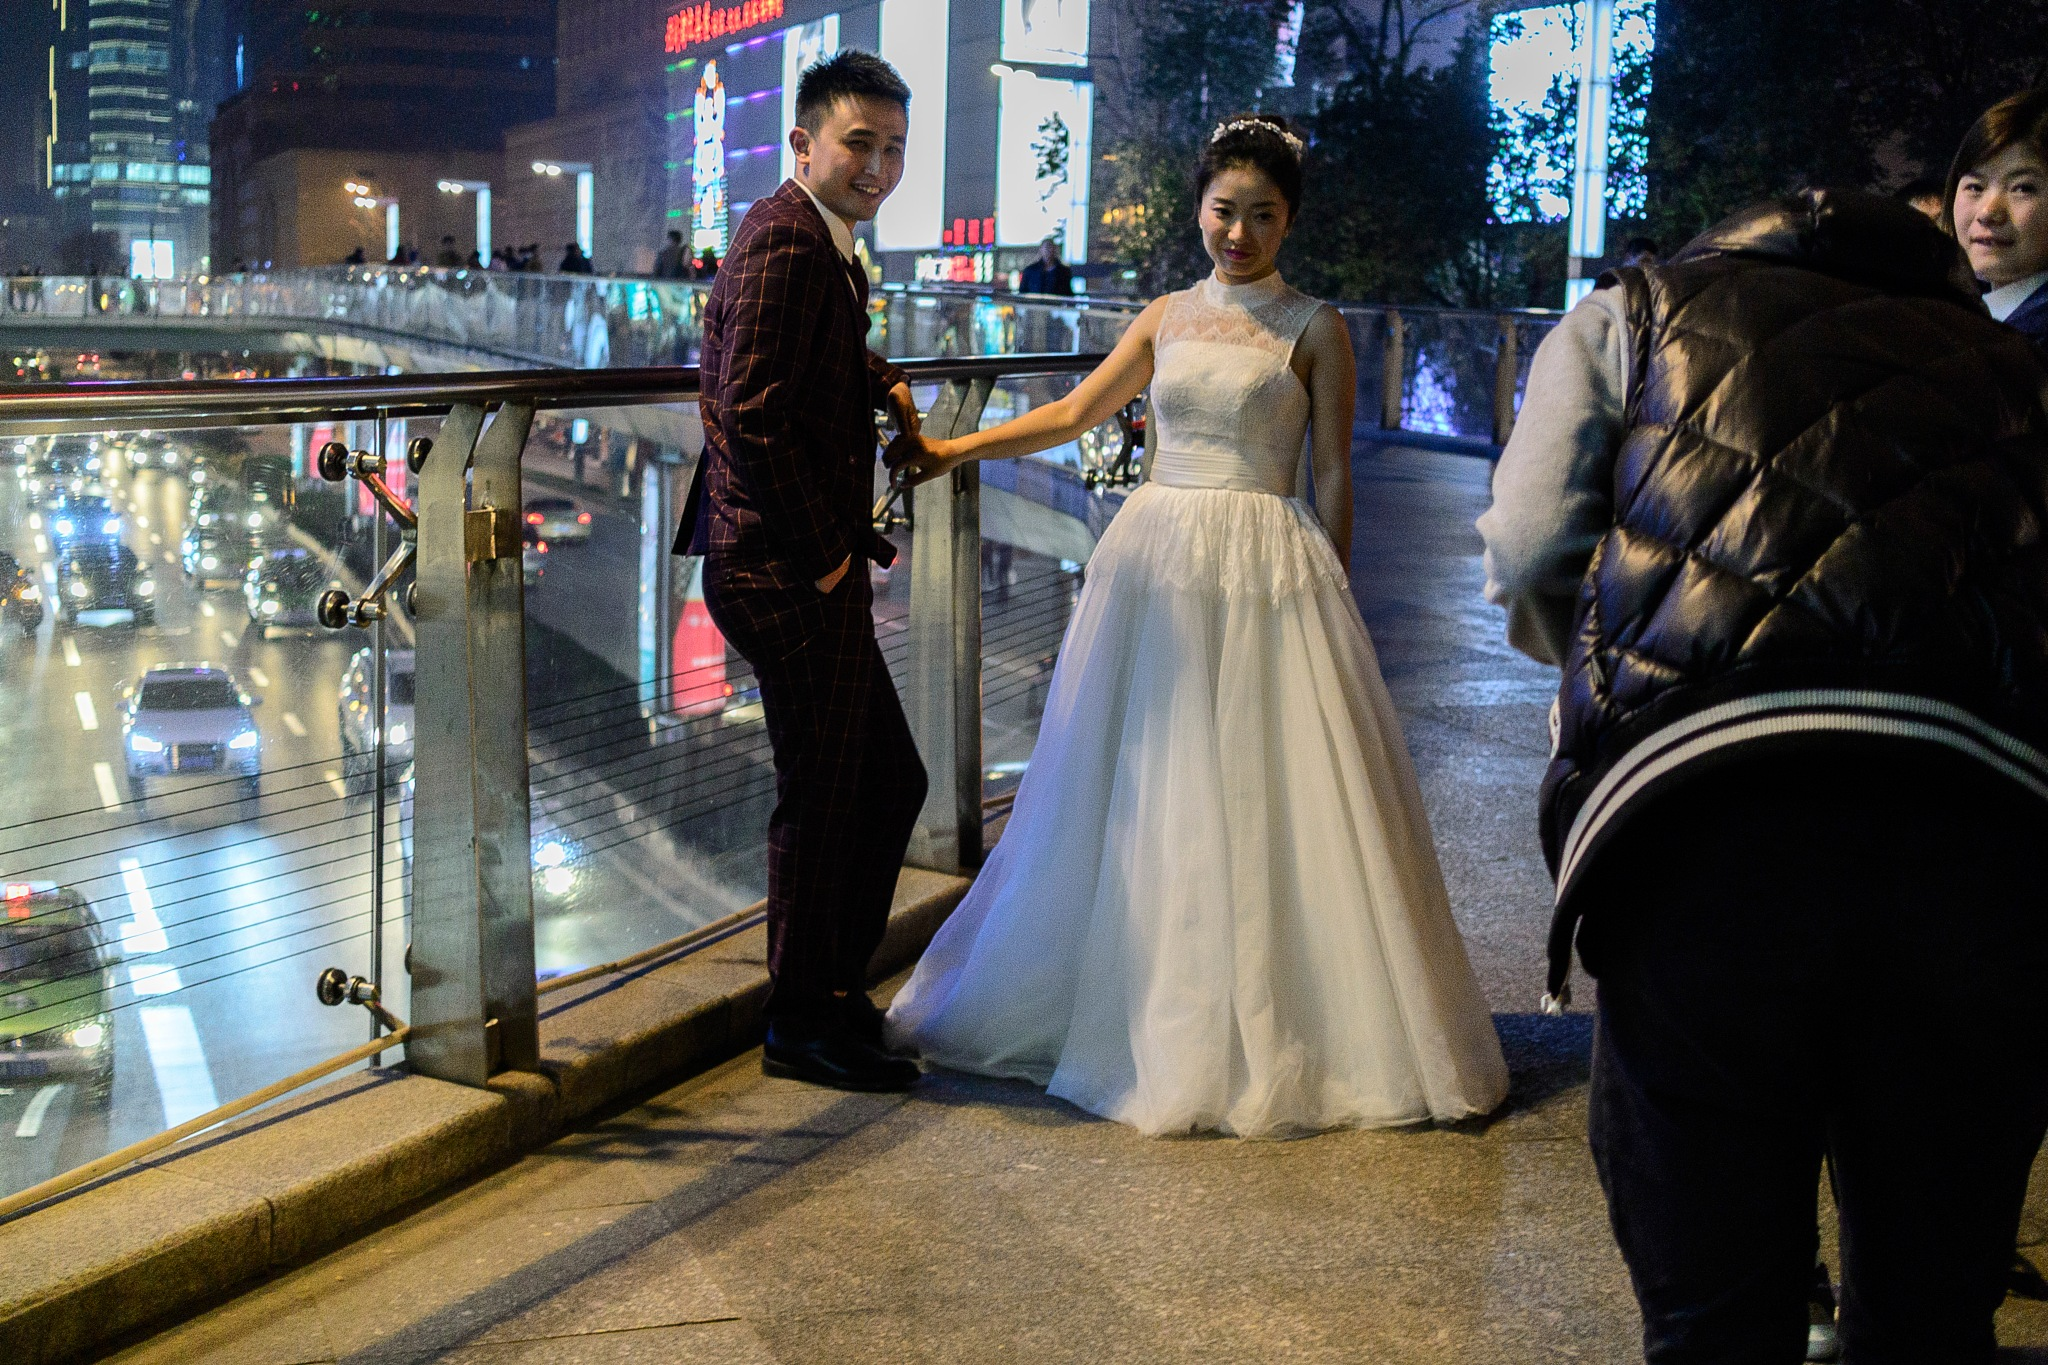 Frustrating a wedding photographer in Chengdu  by JonArneFoss